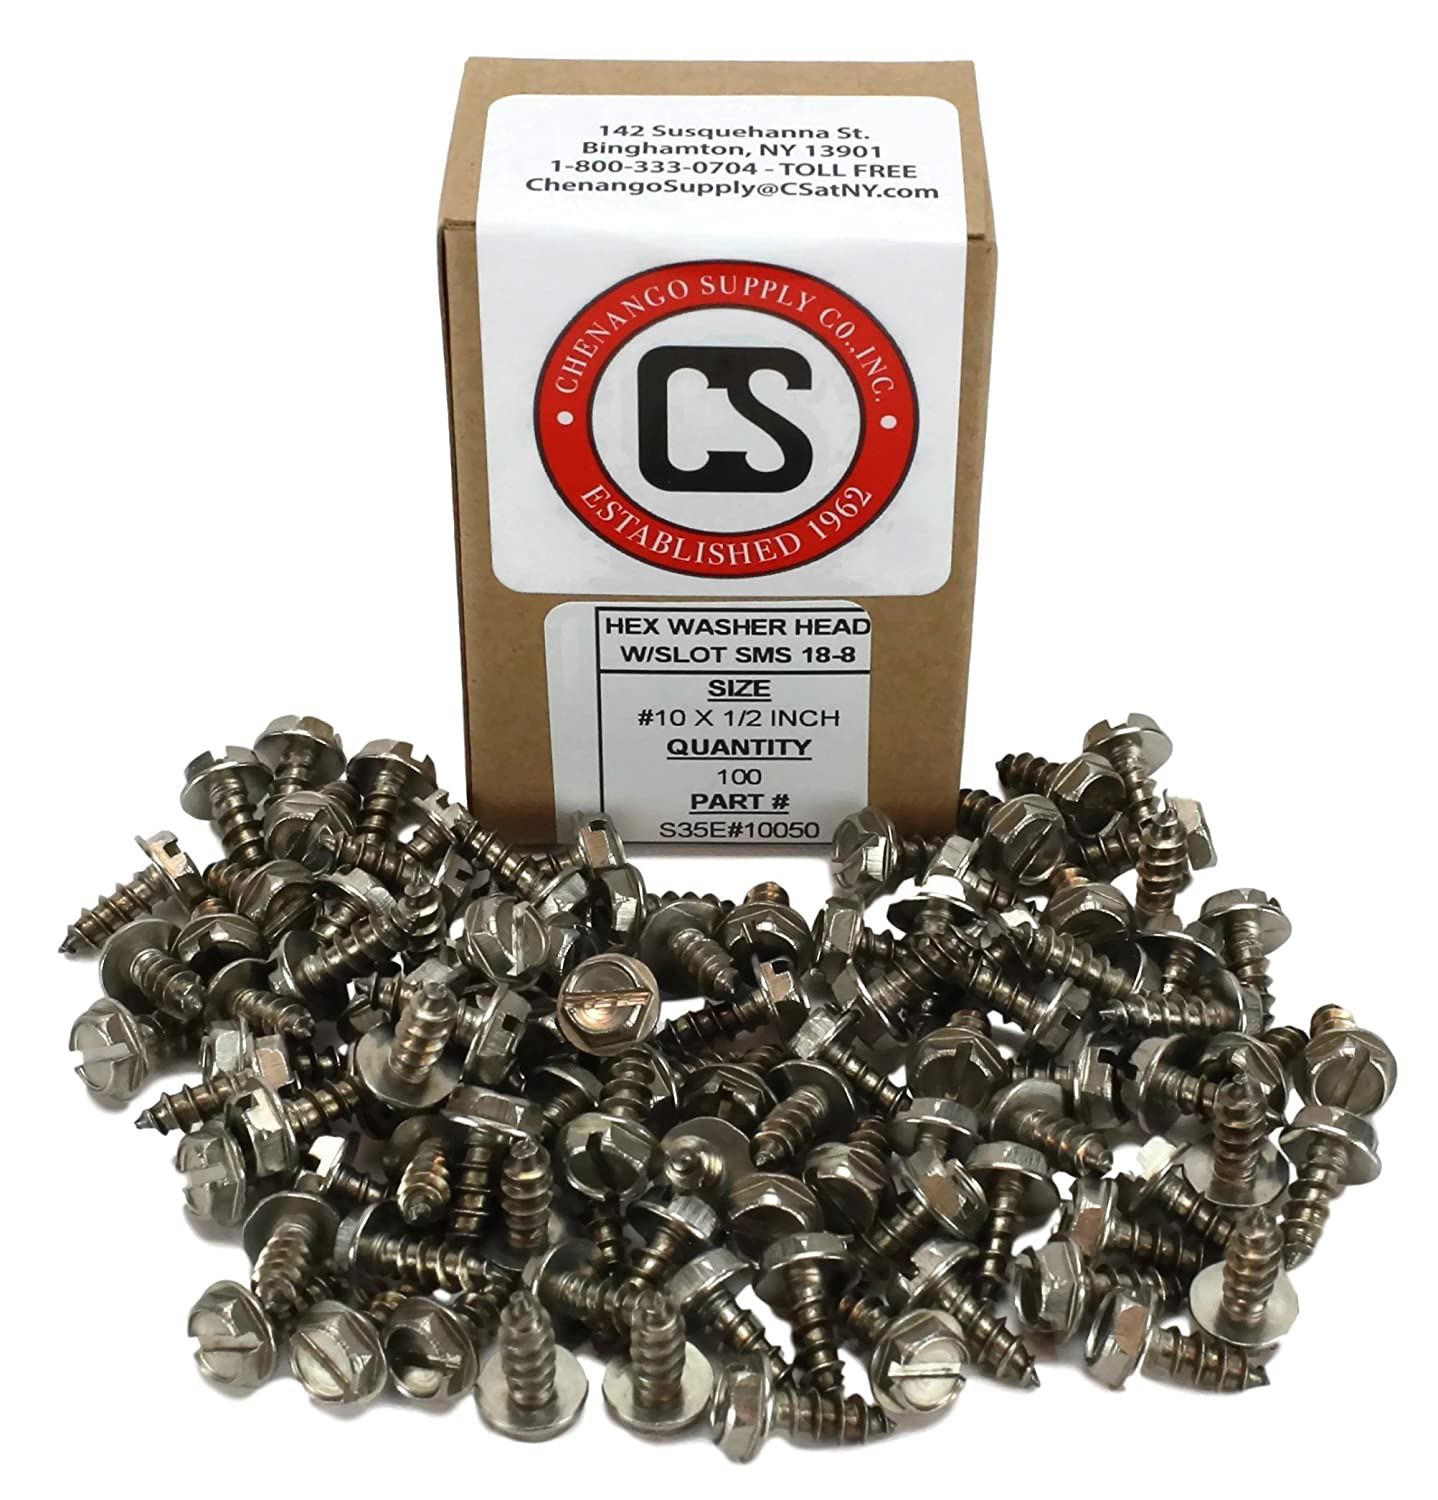 18-8 Stainless Steel Shoulder Screw 1//4-20 Threads 3//4 Thread Length Pack of 1 13//16 Shoulder Length 3//8 Shoulder Diameter Made in US, Plain Finish Hex Socket Drive Meets ASME B18.3 Standard Tolerance Partially Threaded Socket Head Cap